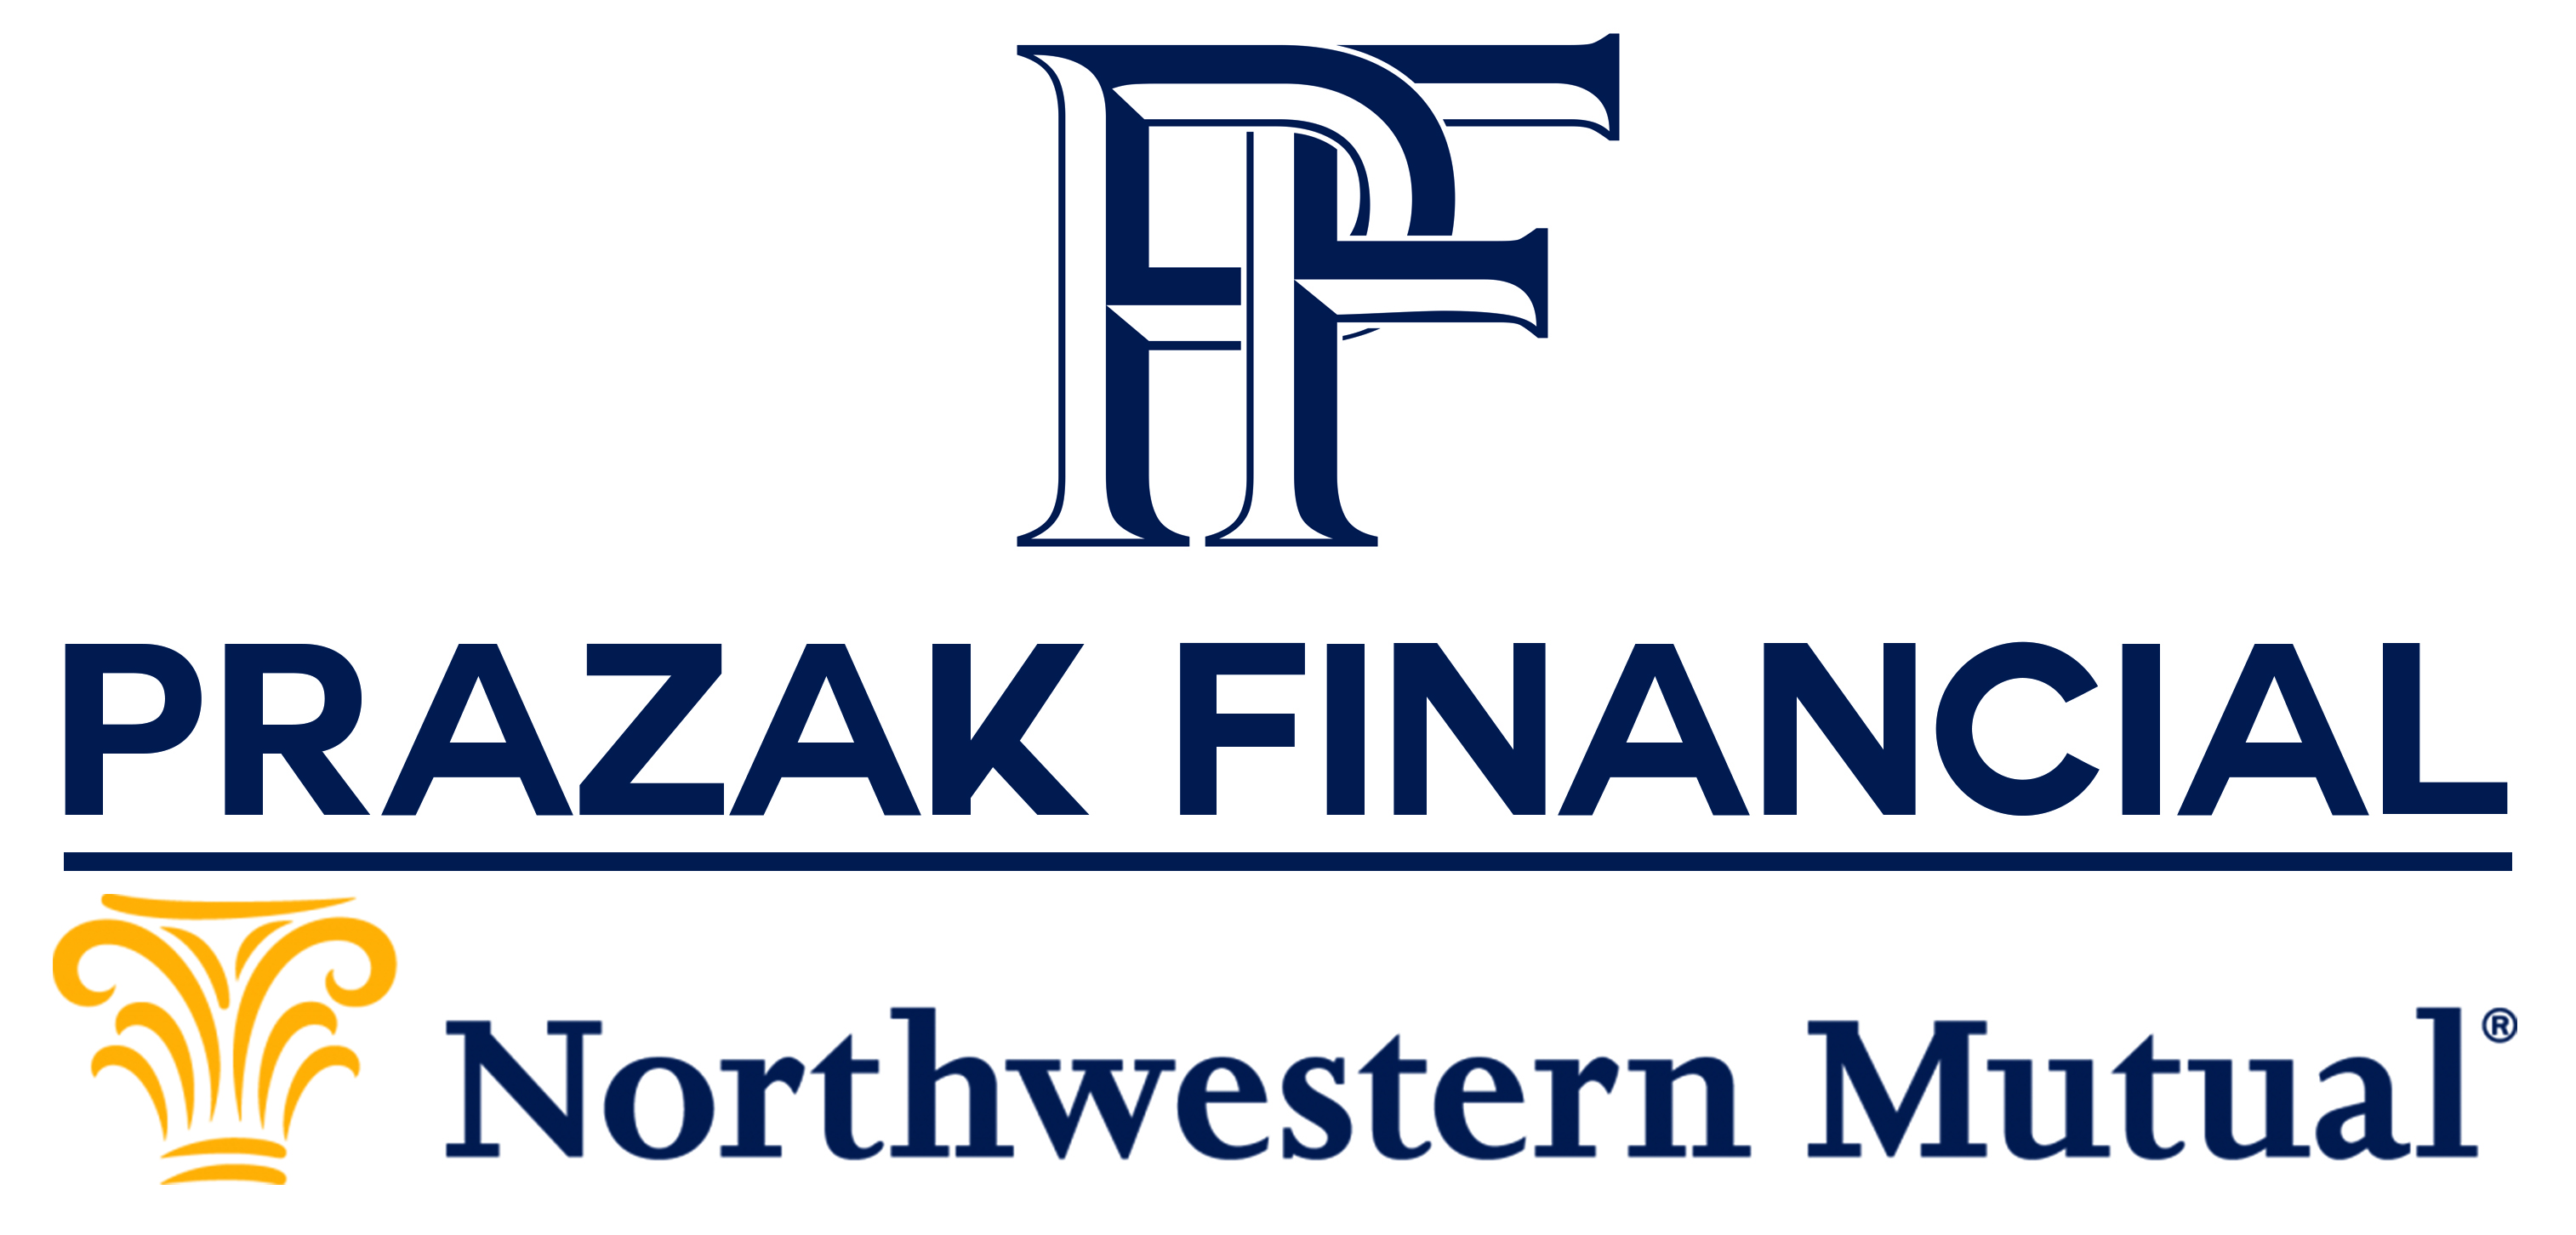 Prazak_financial_logo